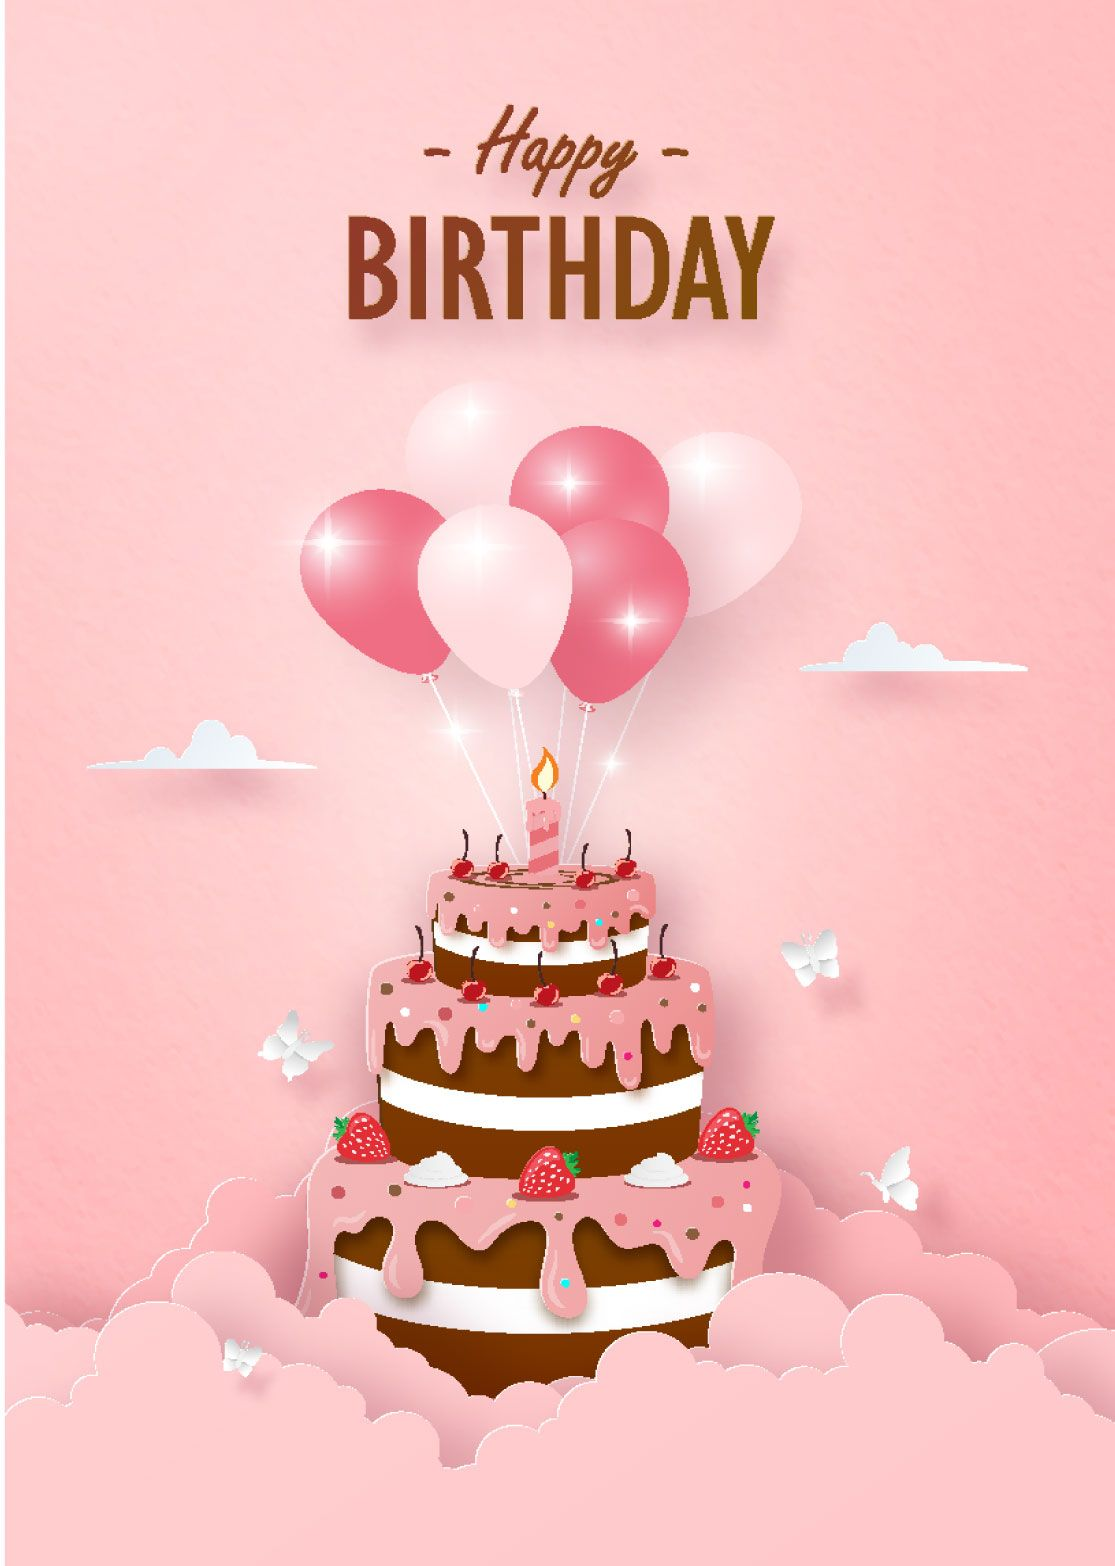 For you on your Birthday in 2020 Happy birthday ecard